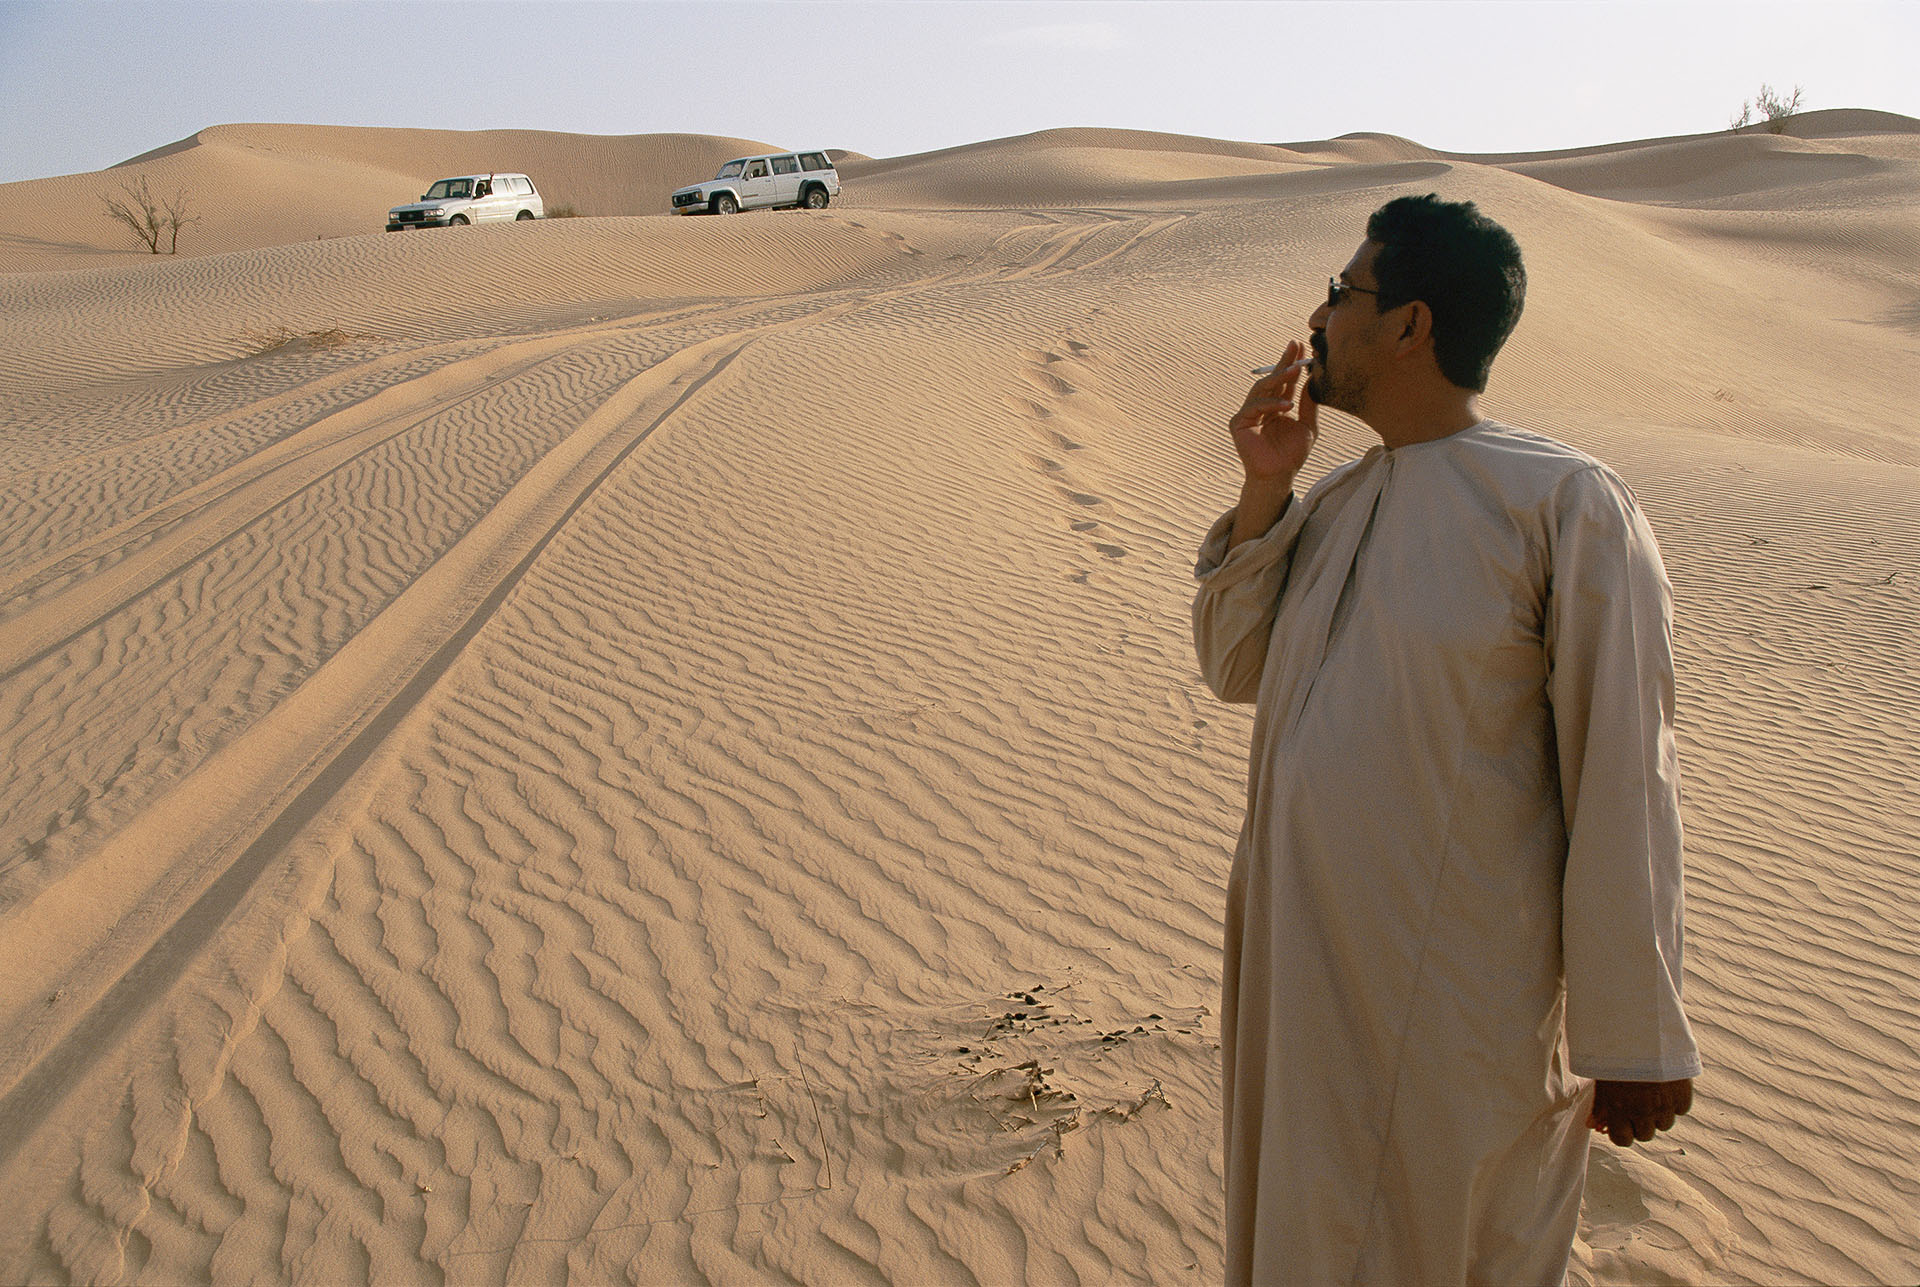 A Bedouin guide stands at the edge of the empty quarter.